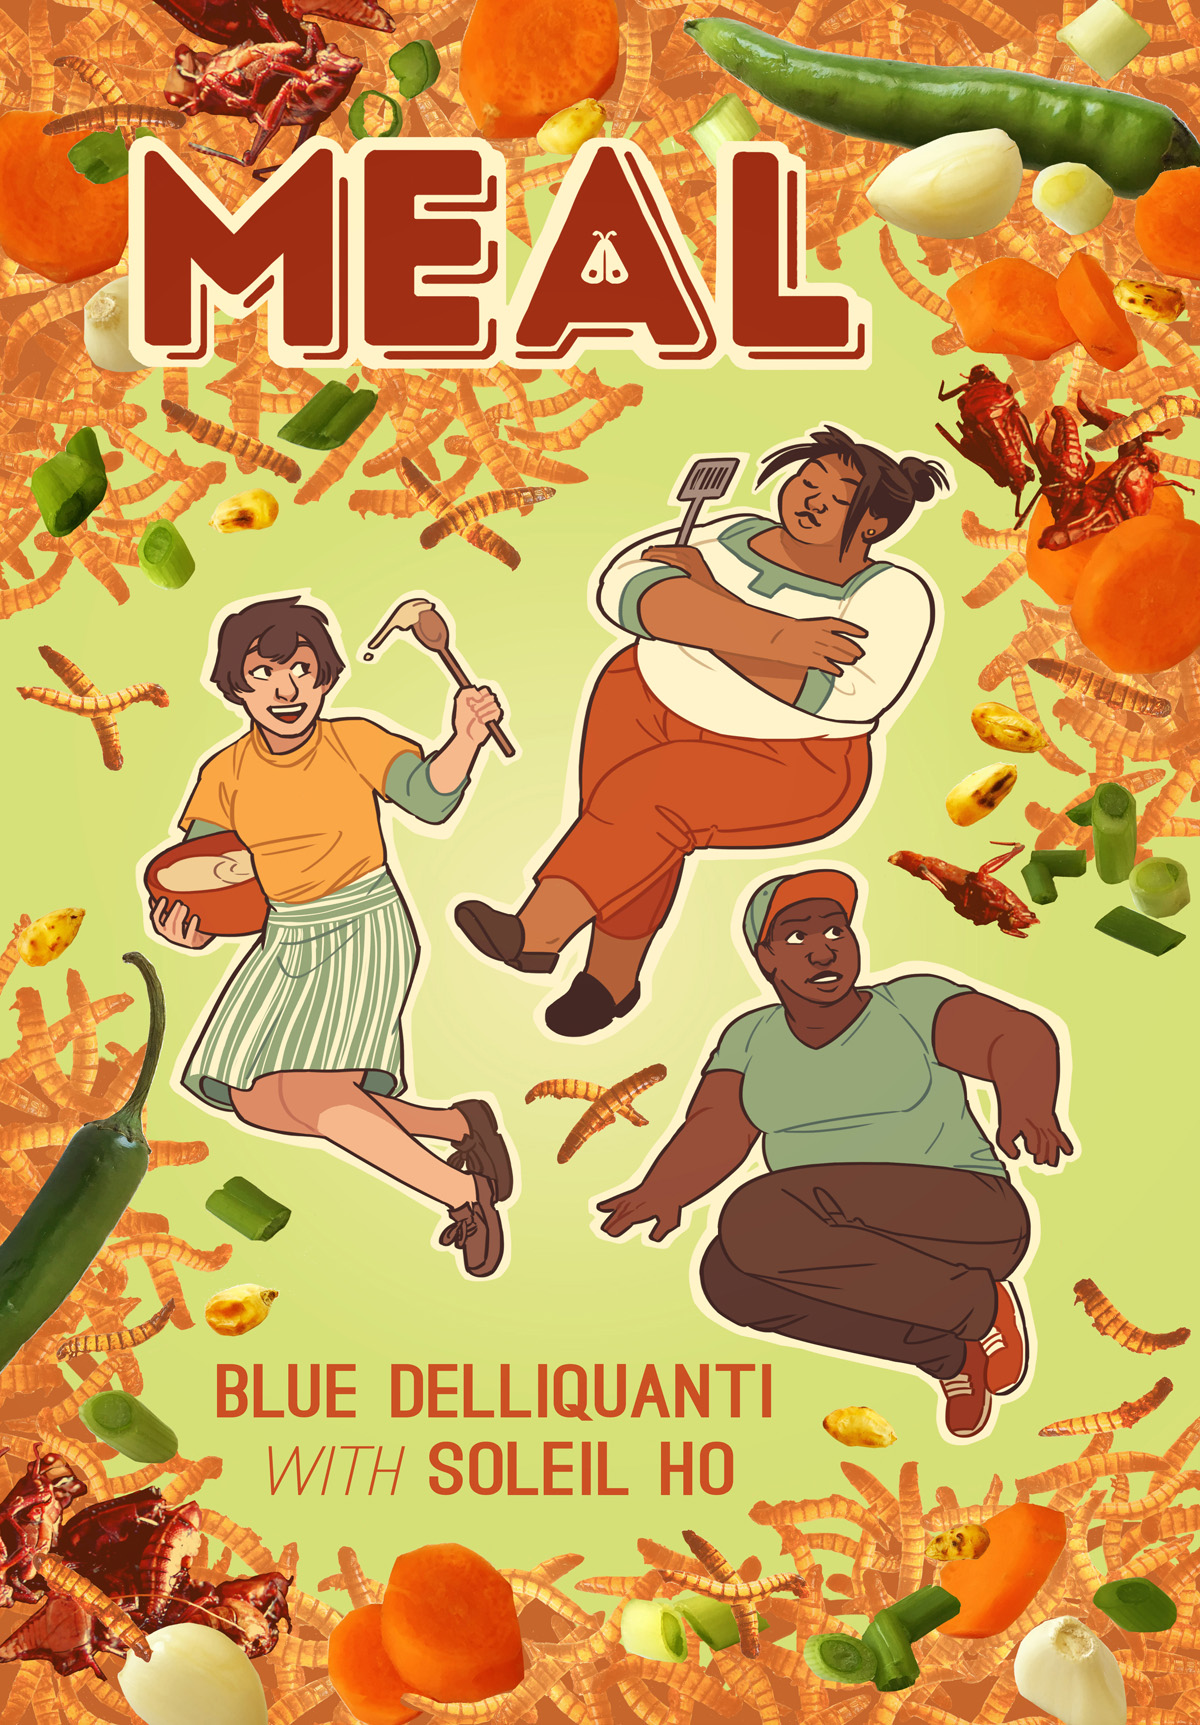 - MEAL(Iron Circus Comics, Oct 2018)Yarrow is a young chef determined to make her mark on the cutting edge of cookery with her insect-based creations. Though her enthusiasm is infectious, it rubs some of her fellow cooks the wrong way, especially Chanda Flores, Yarrow's personal hero and executive chef of an exciting new restaurant. Her people have been eating bugs for centuries, and she's deeply suspicious of this newbie's attempt to turn her traditions into the next foodie trend. While Chanda and her scrappy team of talented devotees struggle to open on time, Yarrow must win over Chanda - and Milani, the neighbor she's been crushing on for weeks - or lose this once-in-a-lifetime opportunity to achieve her dreams.